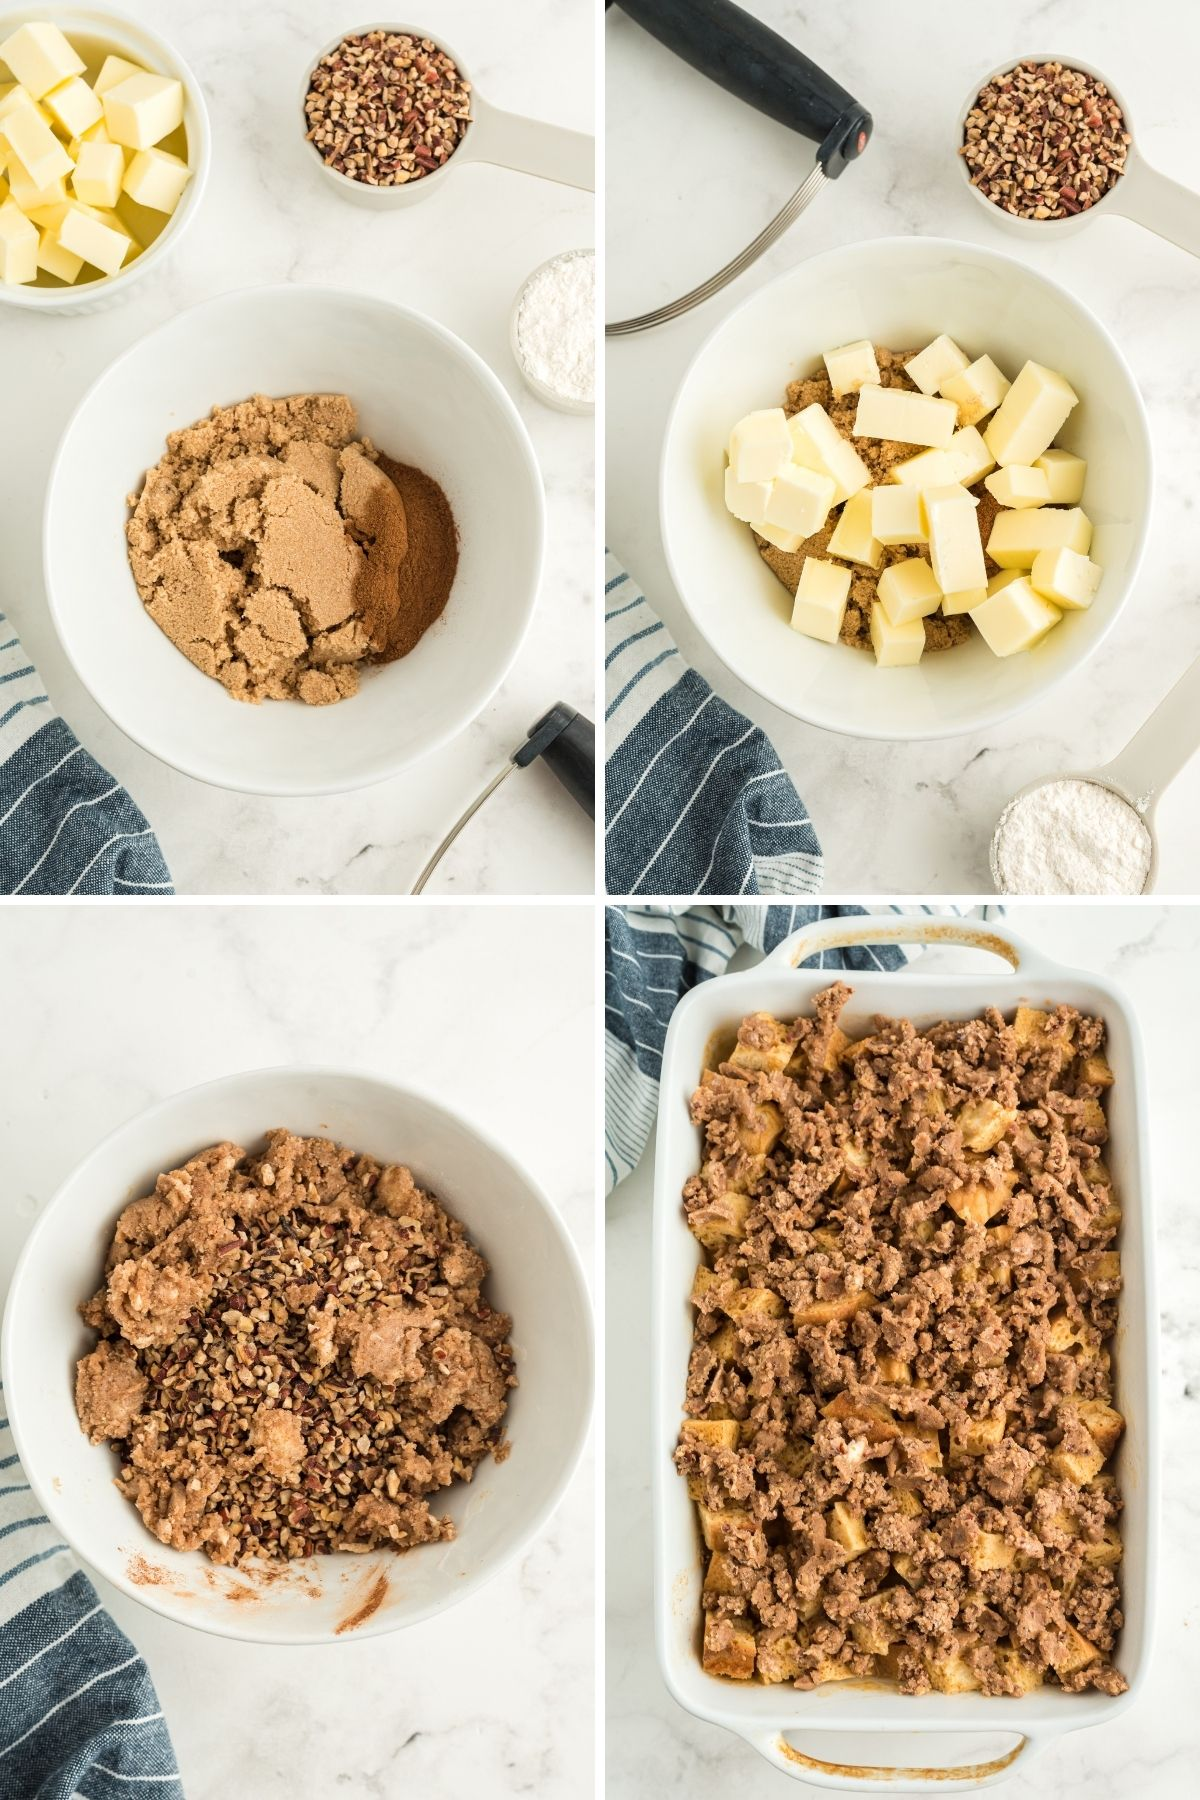 four photos: brown sugar, pumpkin pie spice in bowl with cubed butter in bowl, and chopped nuts; cubed butter on top of sugar mixture; brown sugar and butter is mixed together; mixture is added on top of cubed bread in white casserole dish